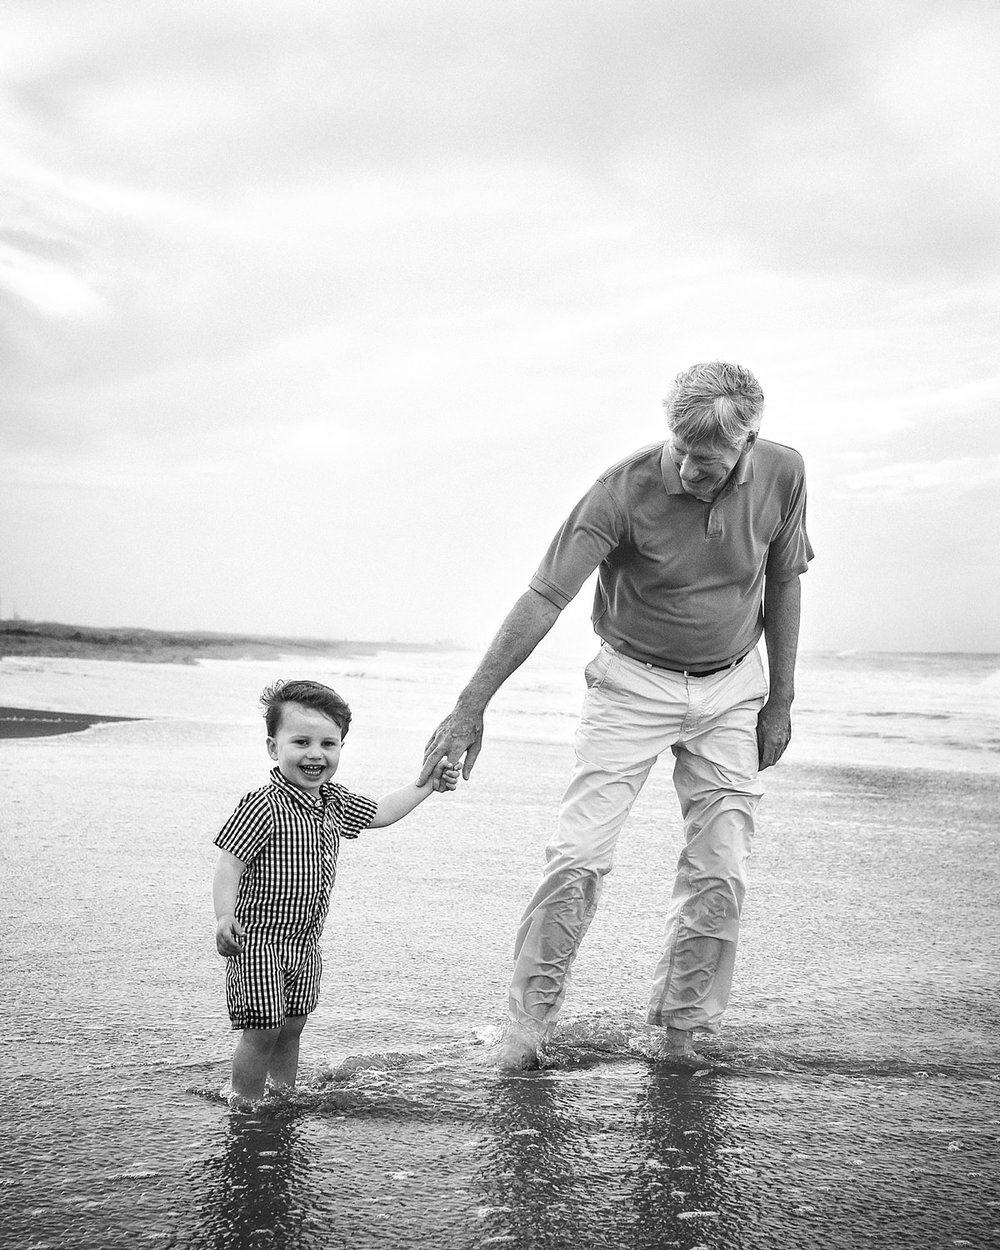 grandfather-grandson-play-on-beach-classic-black-white-melissa-bliss-photography.jpg